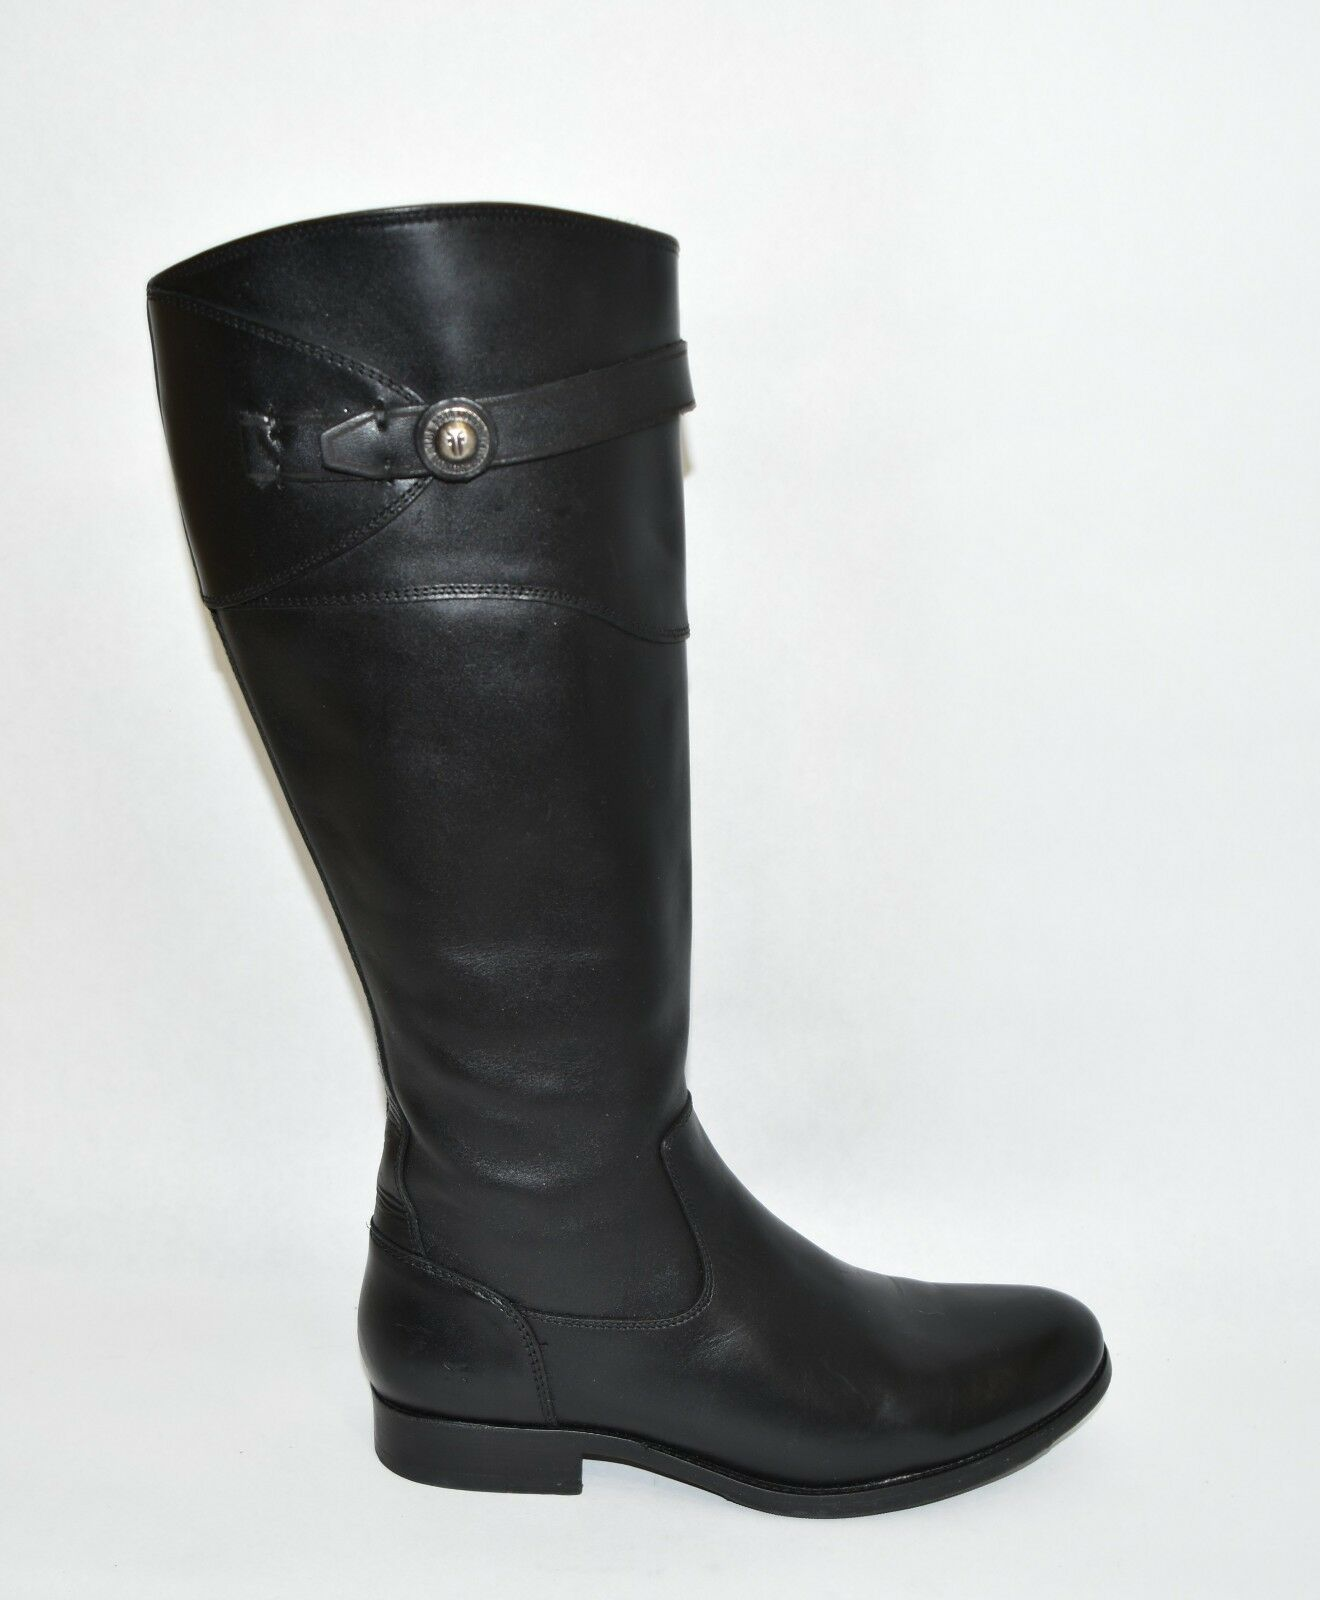 New Frye 'Molly Knee High Boot' 3475111 Black Tall Riding Boot EXT Calf 6.5 T7